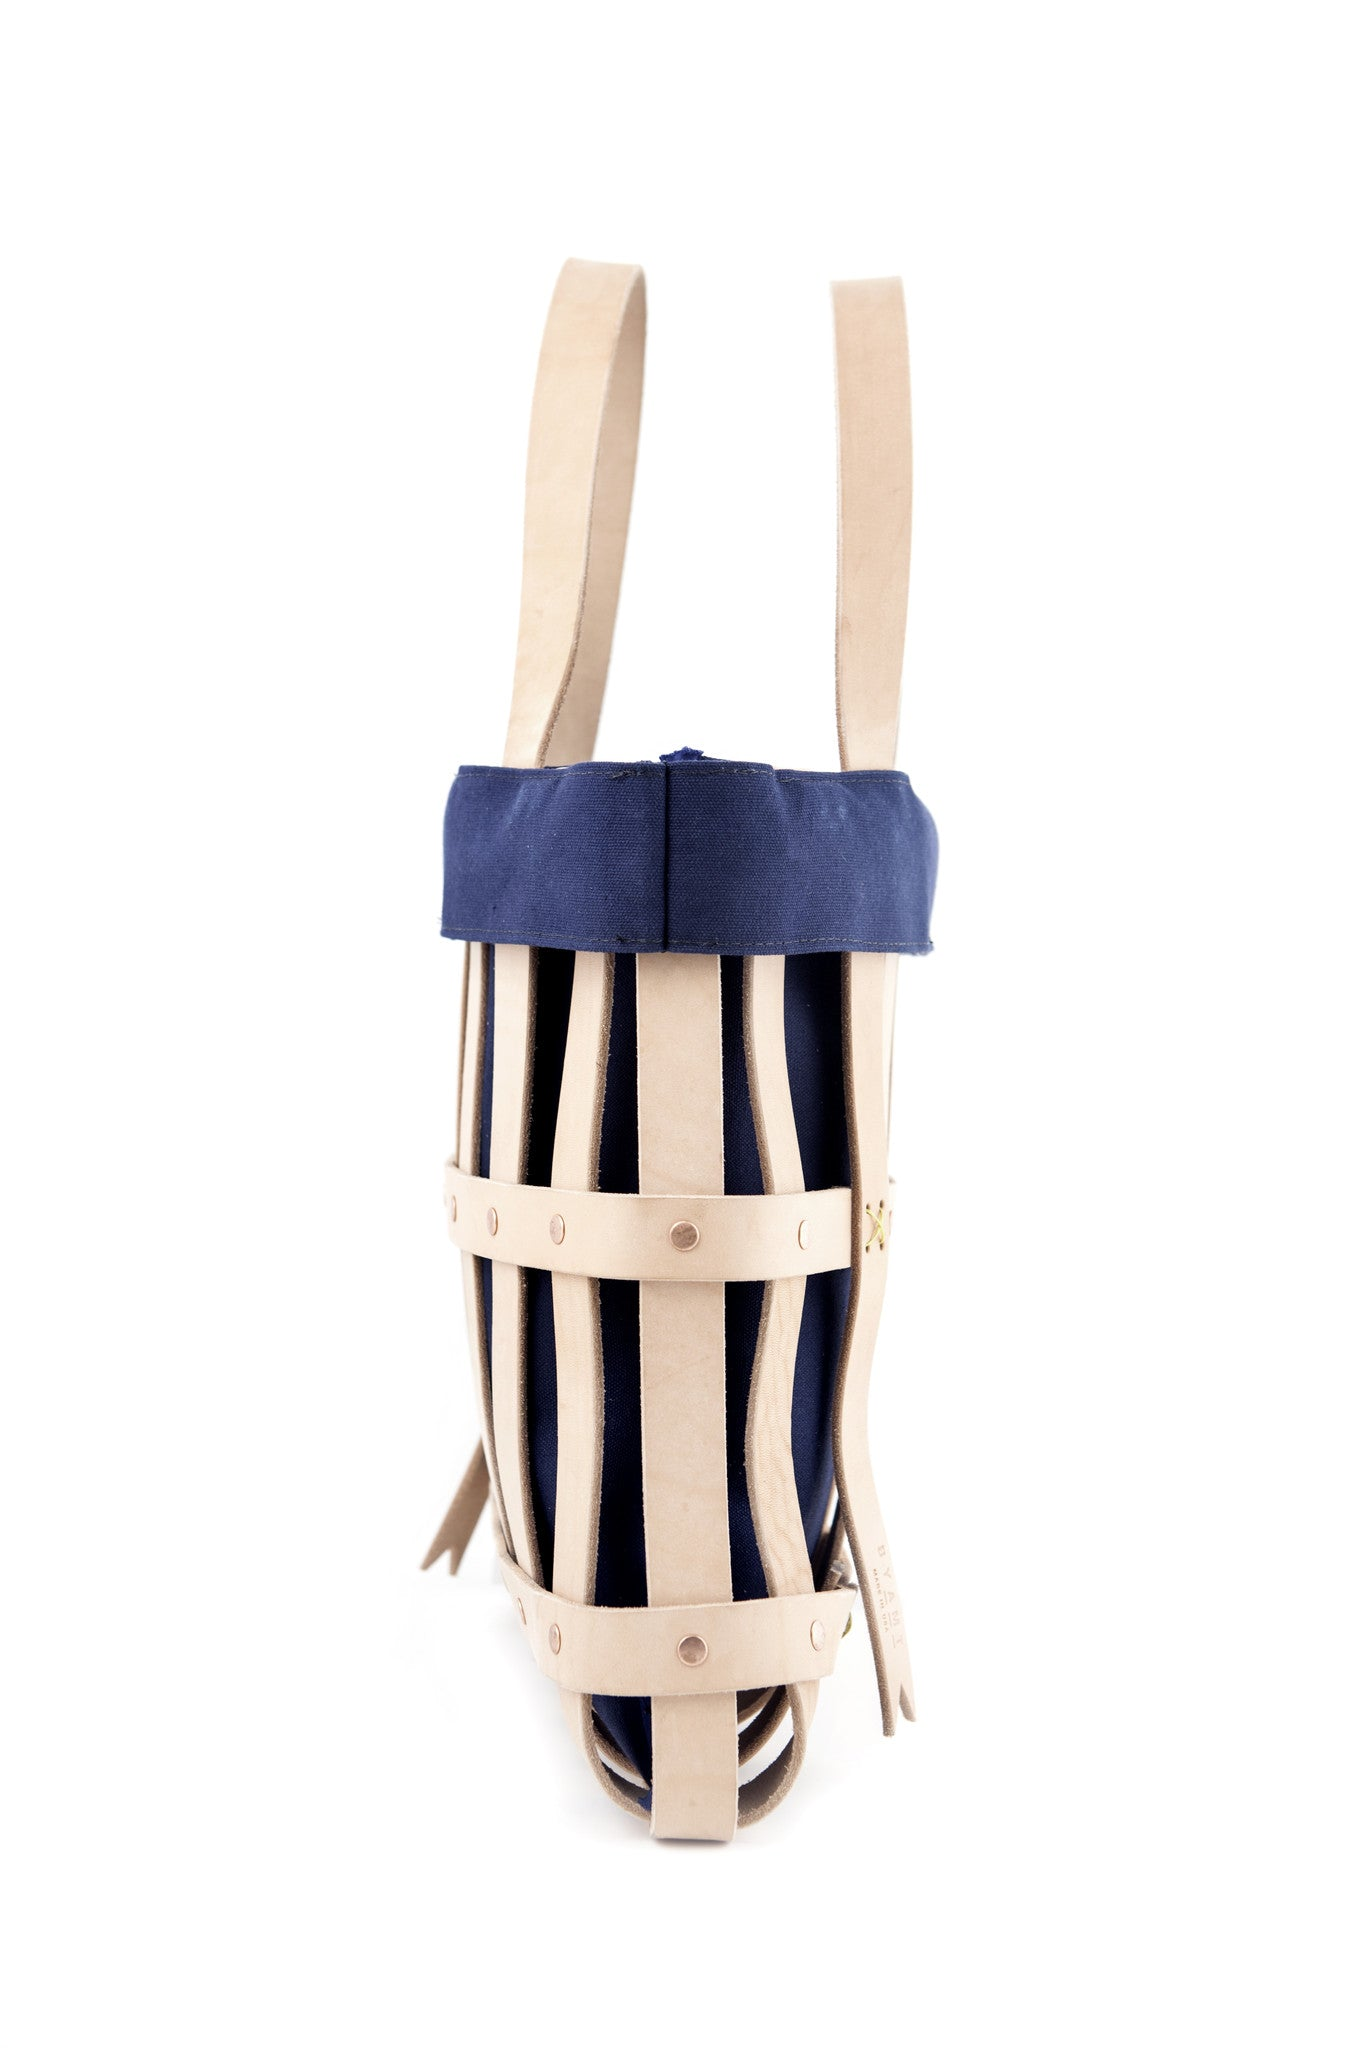 Leather Strap Tote Bag + Canvas Liner - buyAMT Shop